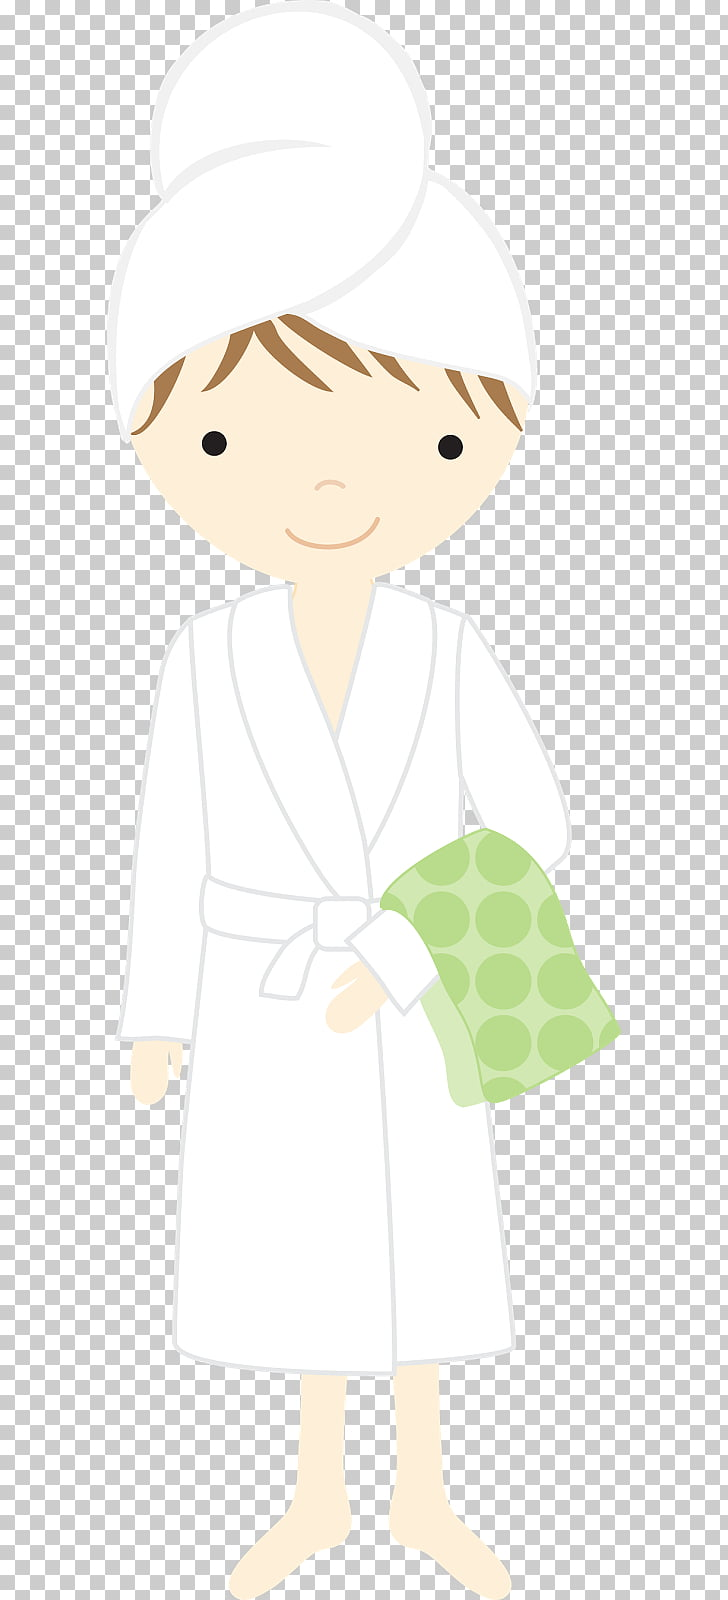 Spa Beauty Parlour Drawing Idea, spa theme PNG clipart.